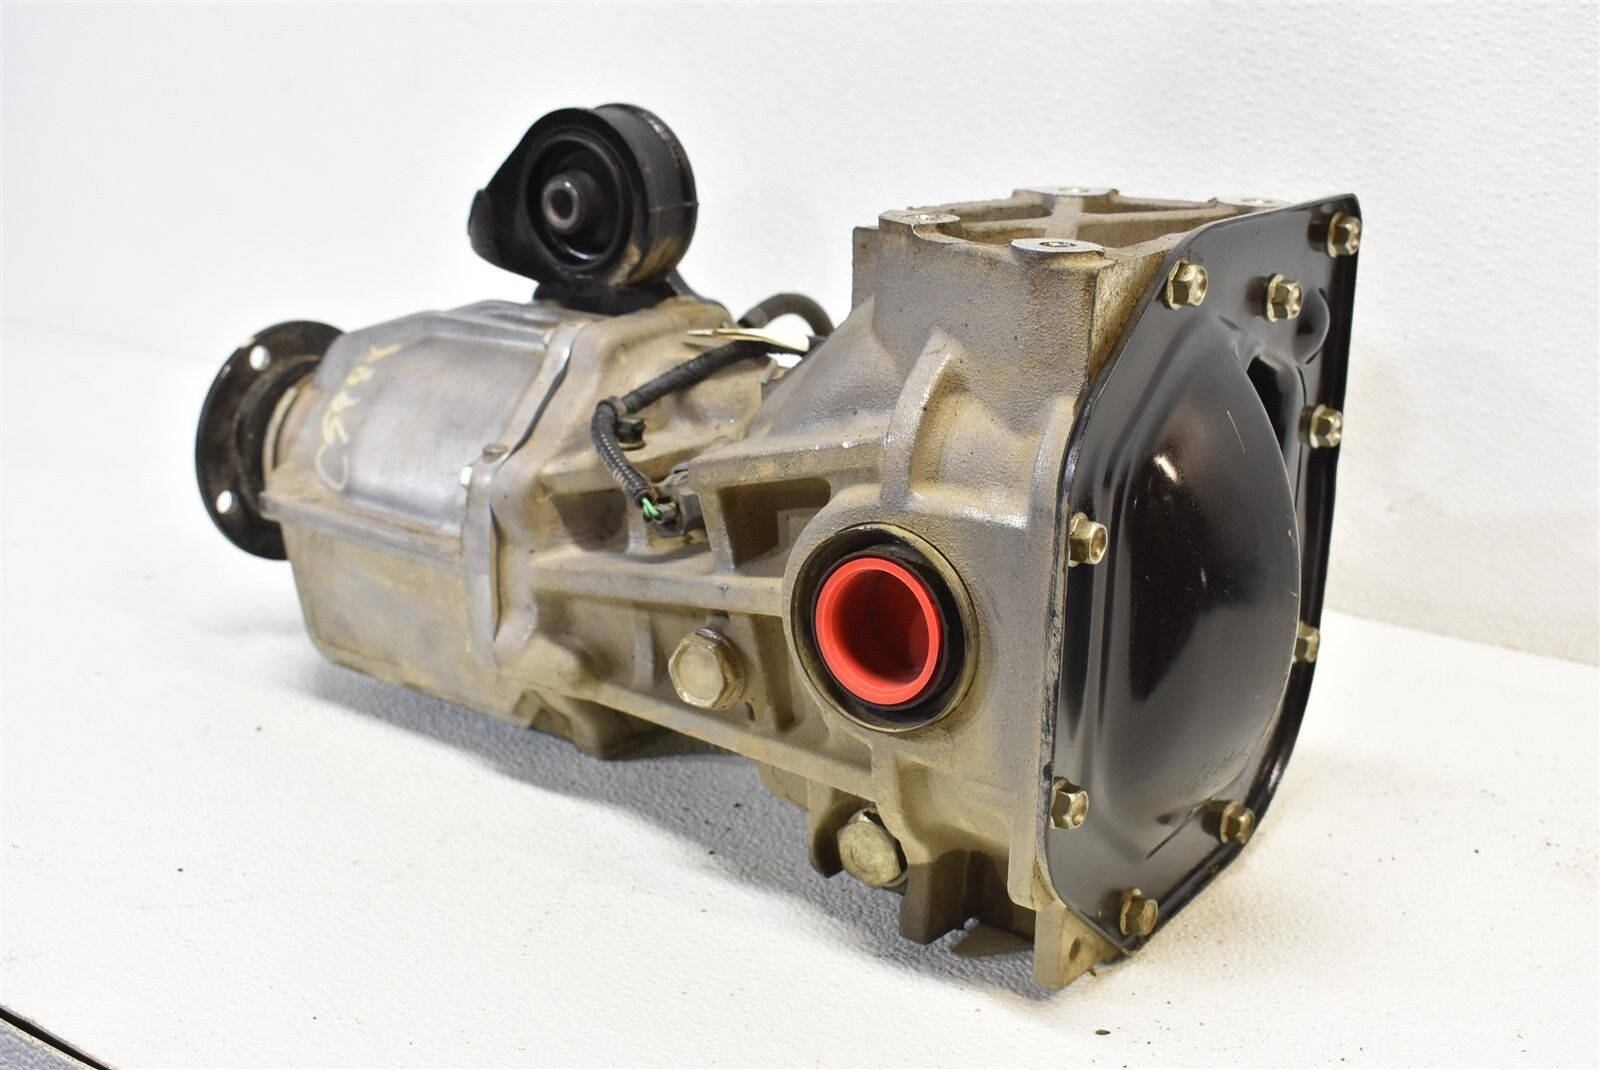 06 07 Mazdaspeed6 Rear Differential Carrier Diff OEM Speed 6 MS6 2006 2007